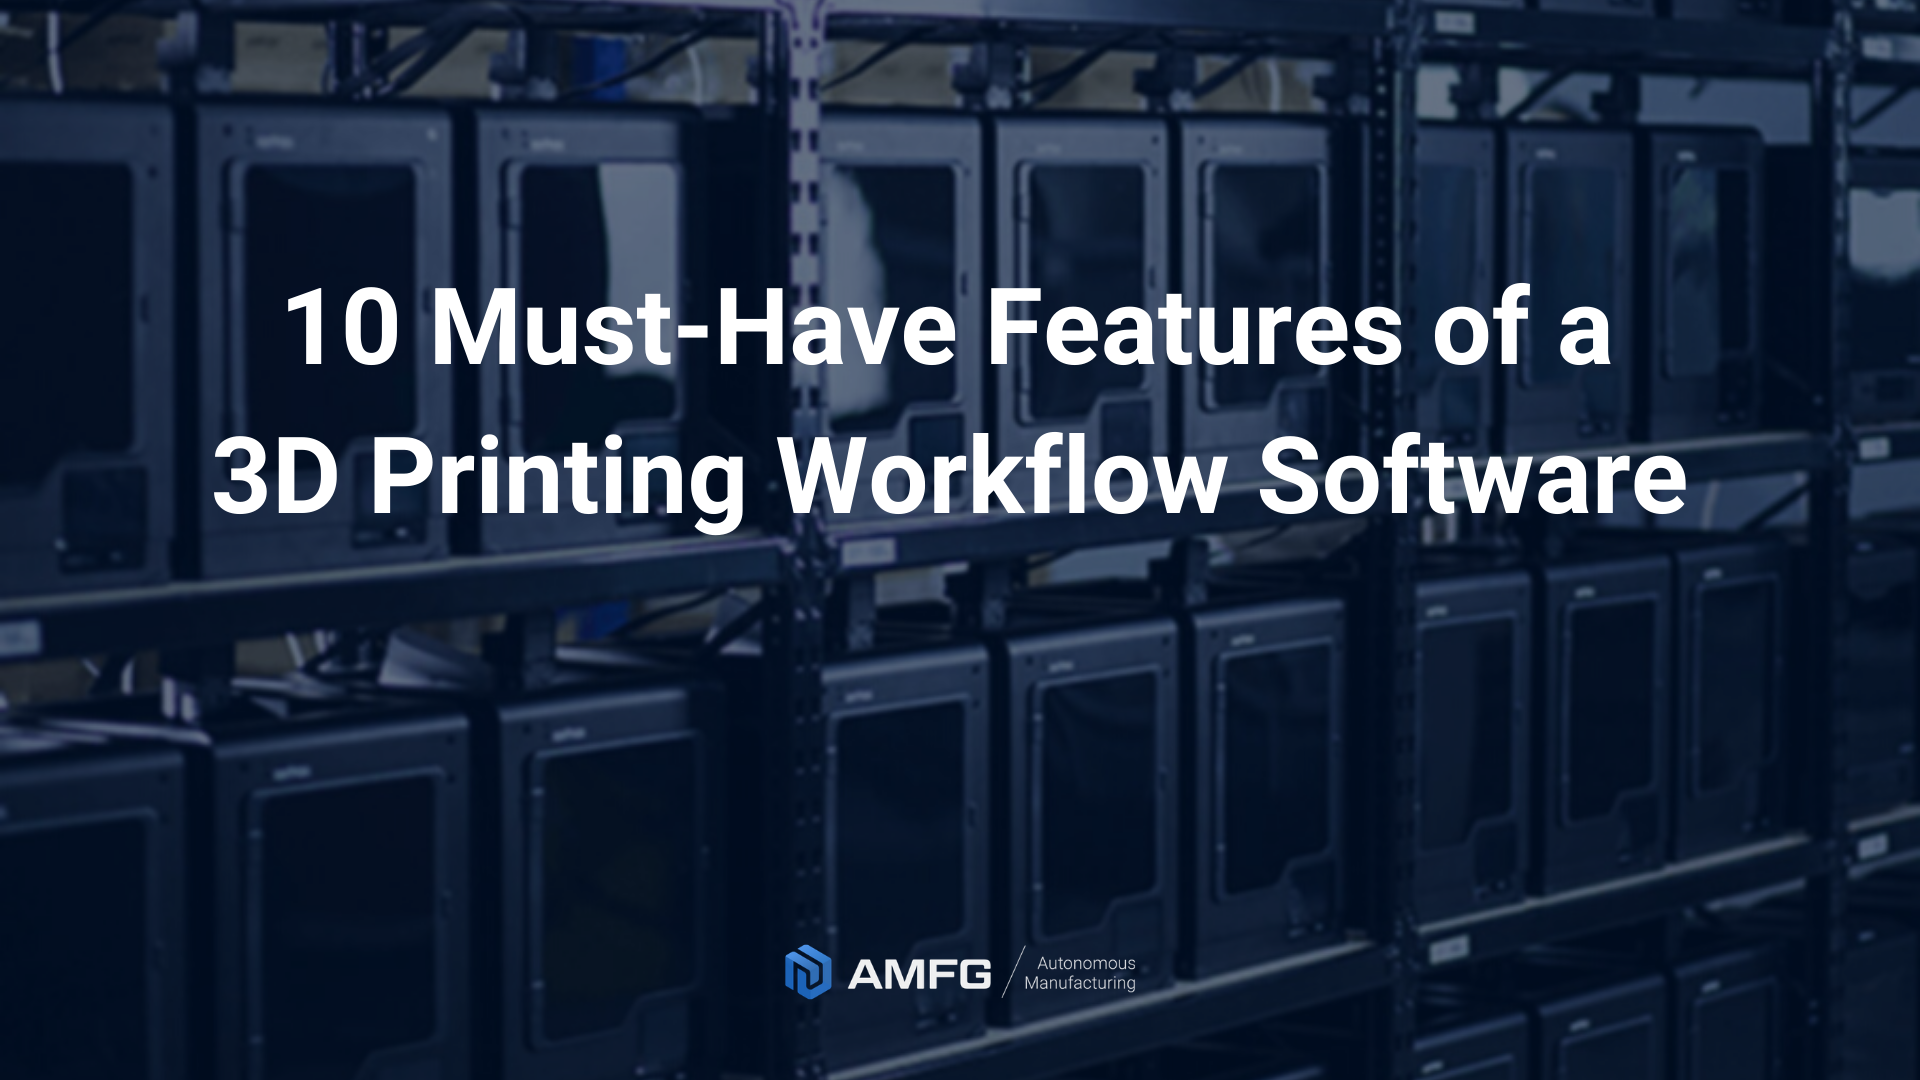 10 Features of a 3D Printing Workflow Software that are Truly Essential